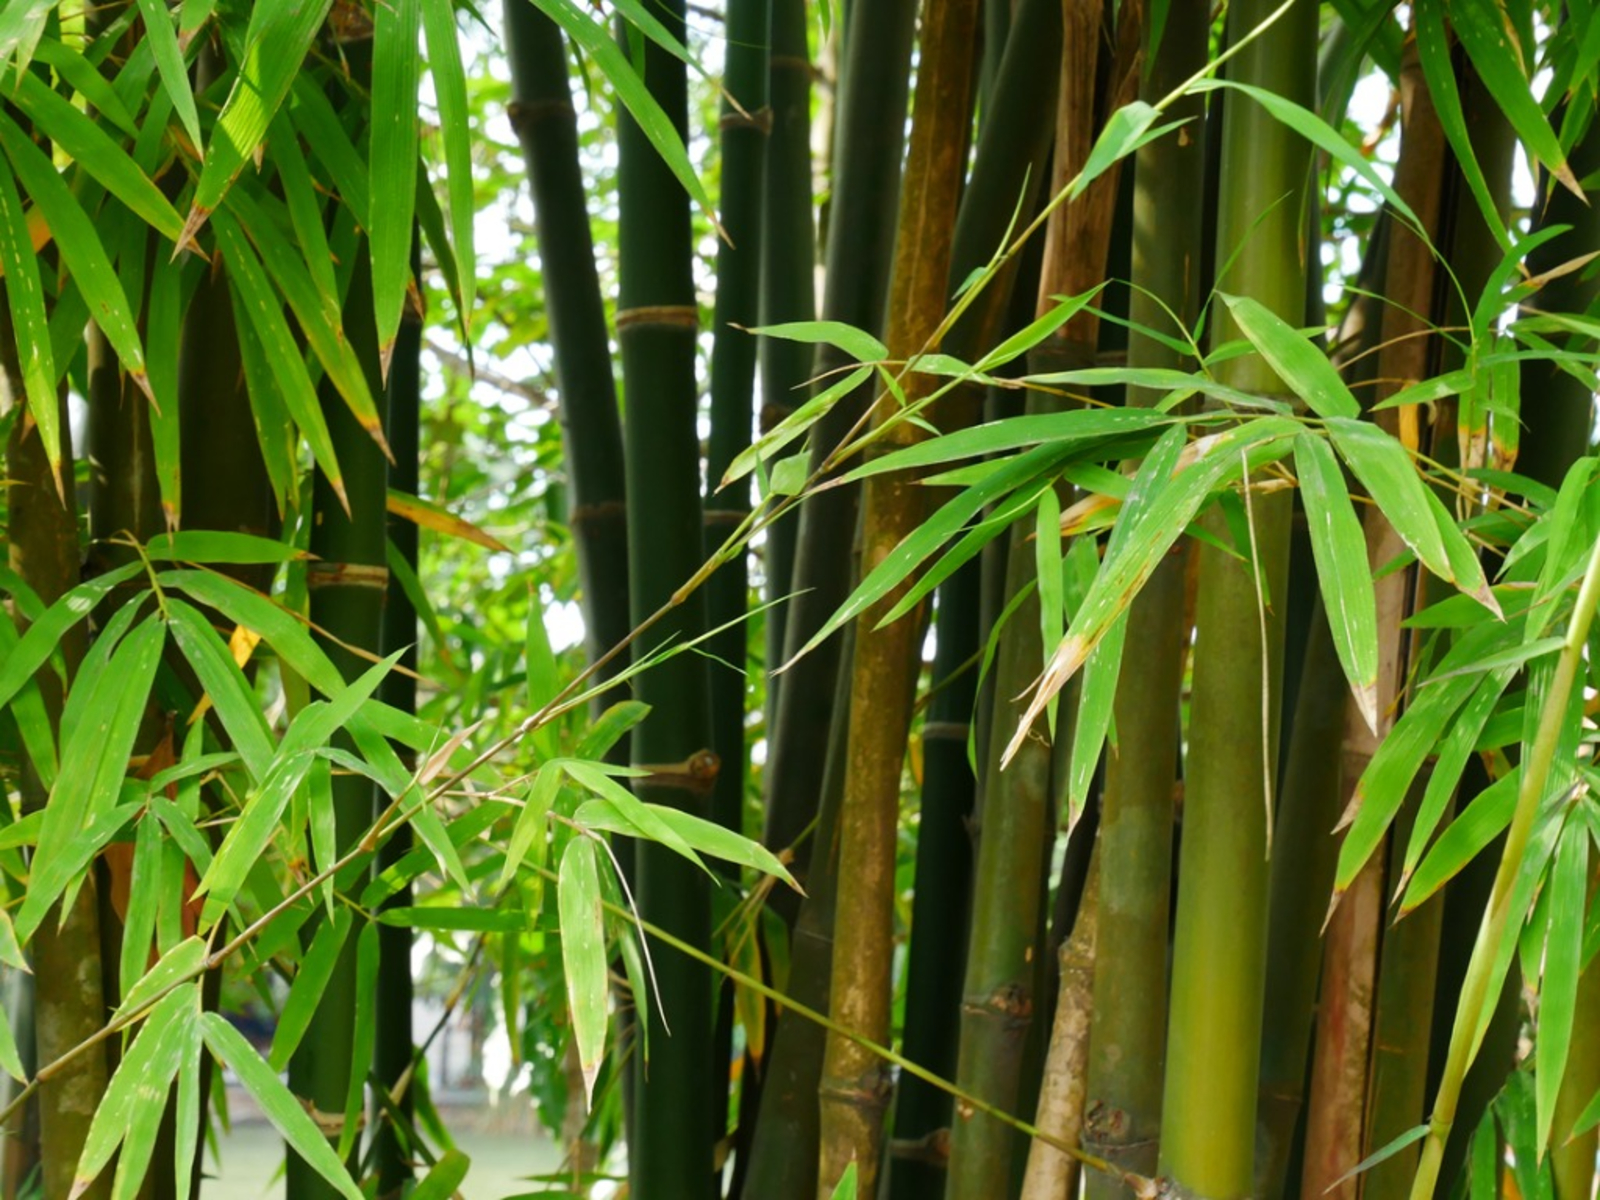 Grow And Care For Bamboo In The Garden, How To Care For Outdoor Bamboo Plants